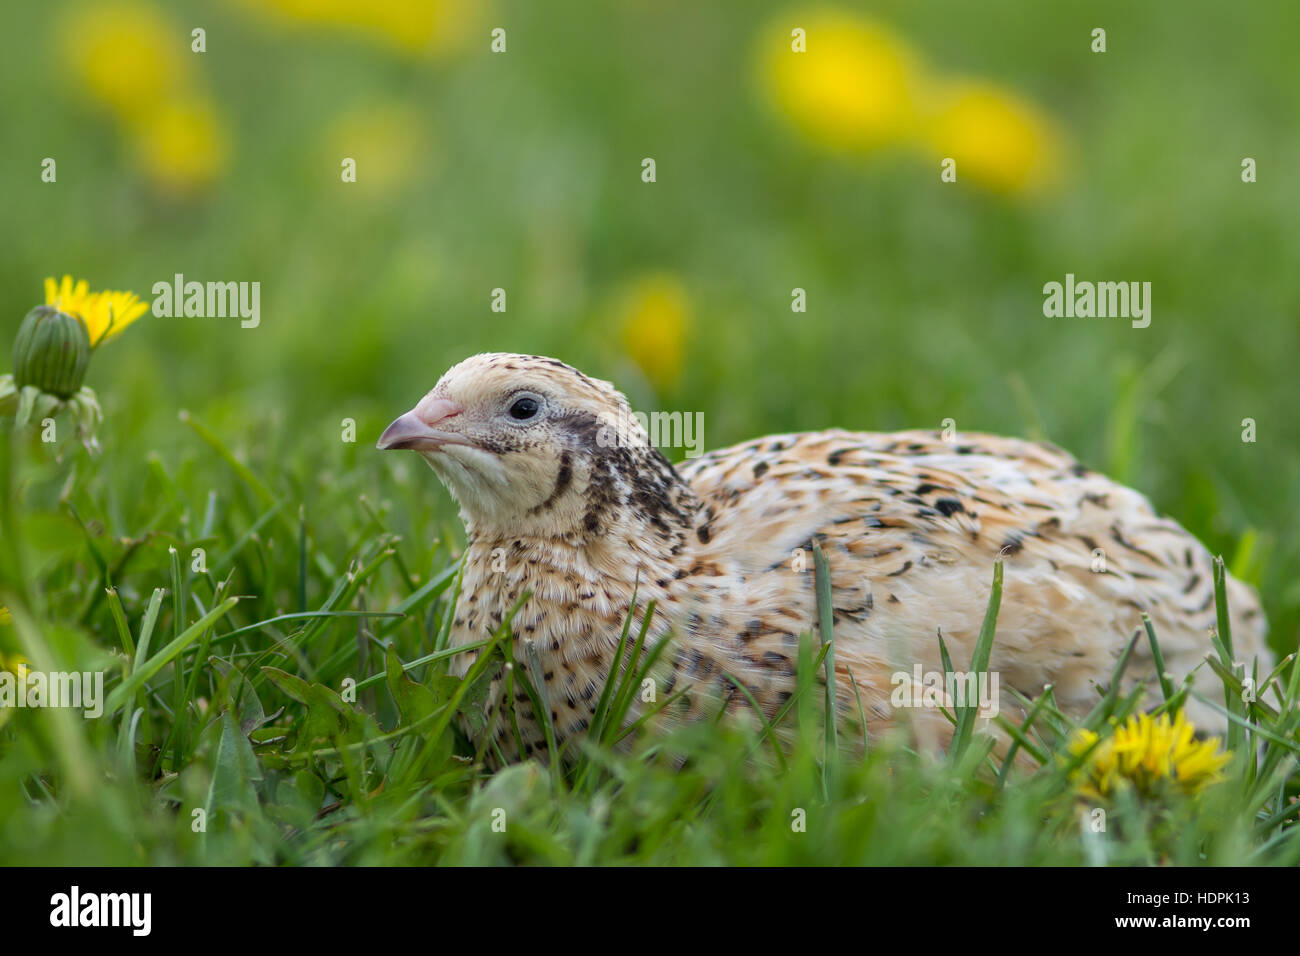 Japanese quail (Coturnix japonica) in a spring meadow - Stock Image